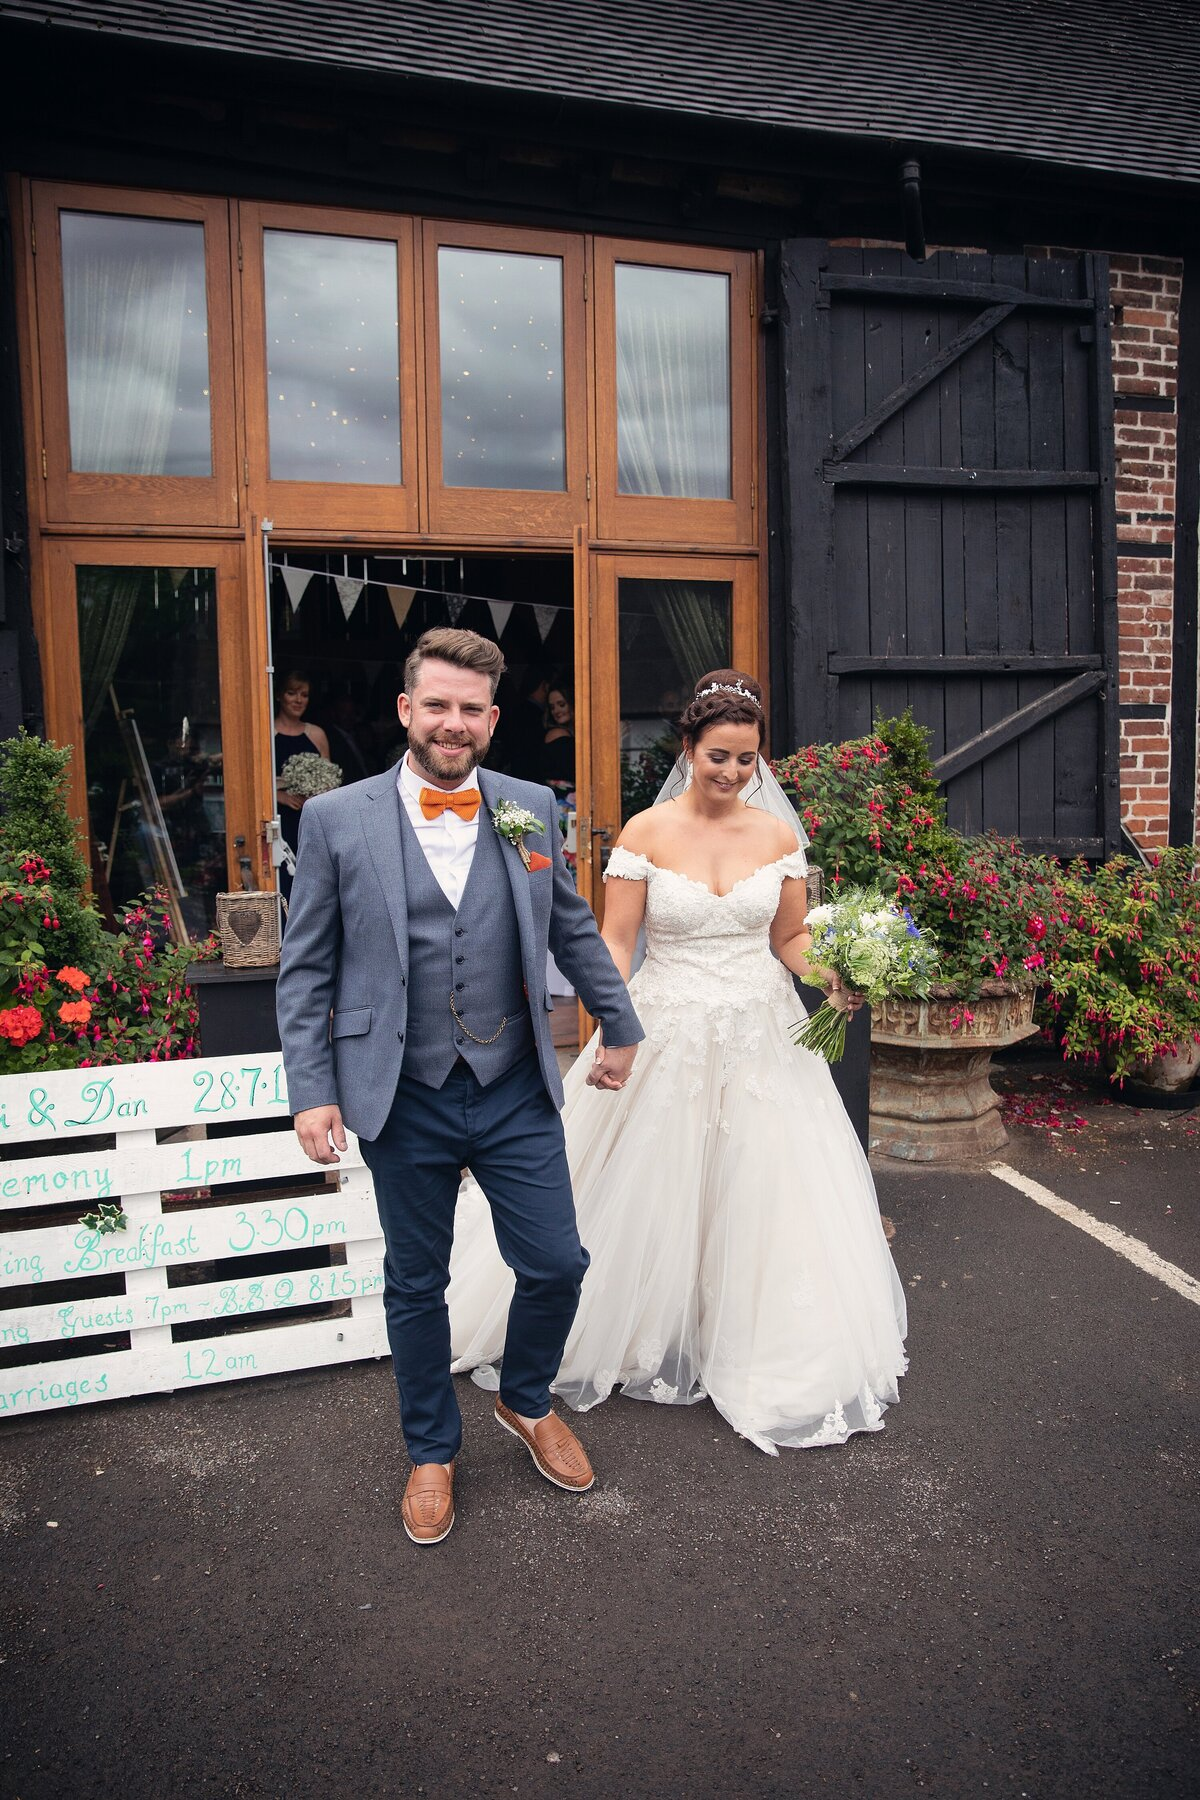 blog-linzi&dan-hundredhouse56